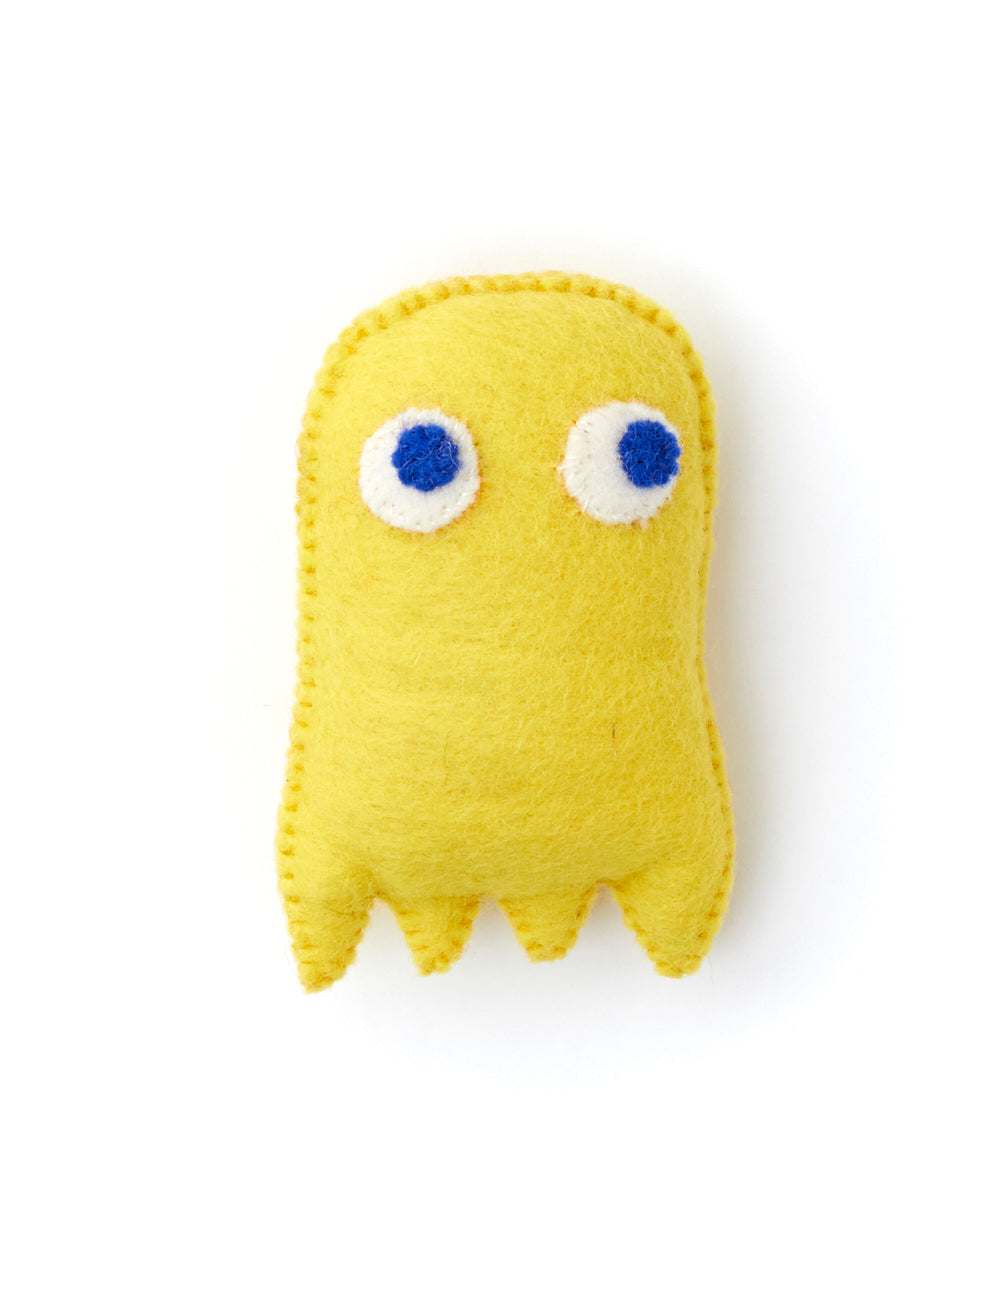 Pacman Dog Toy | Yellow